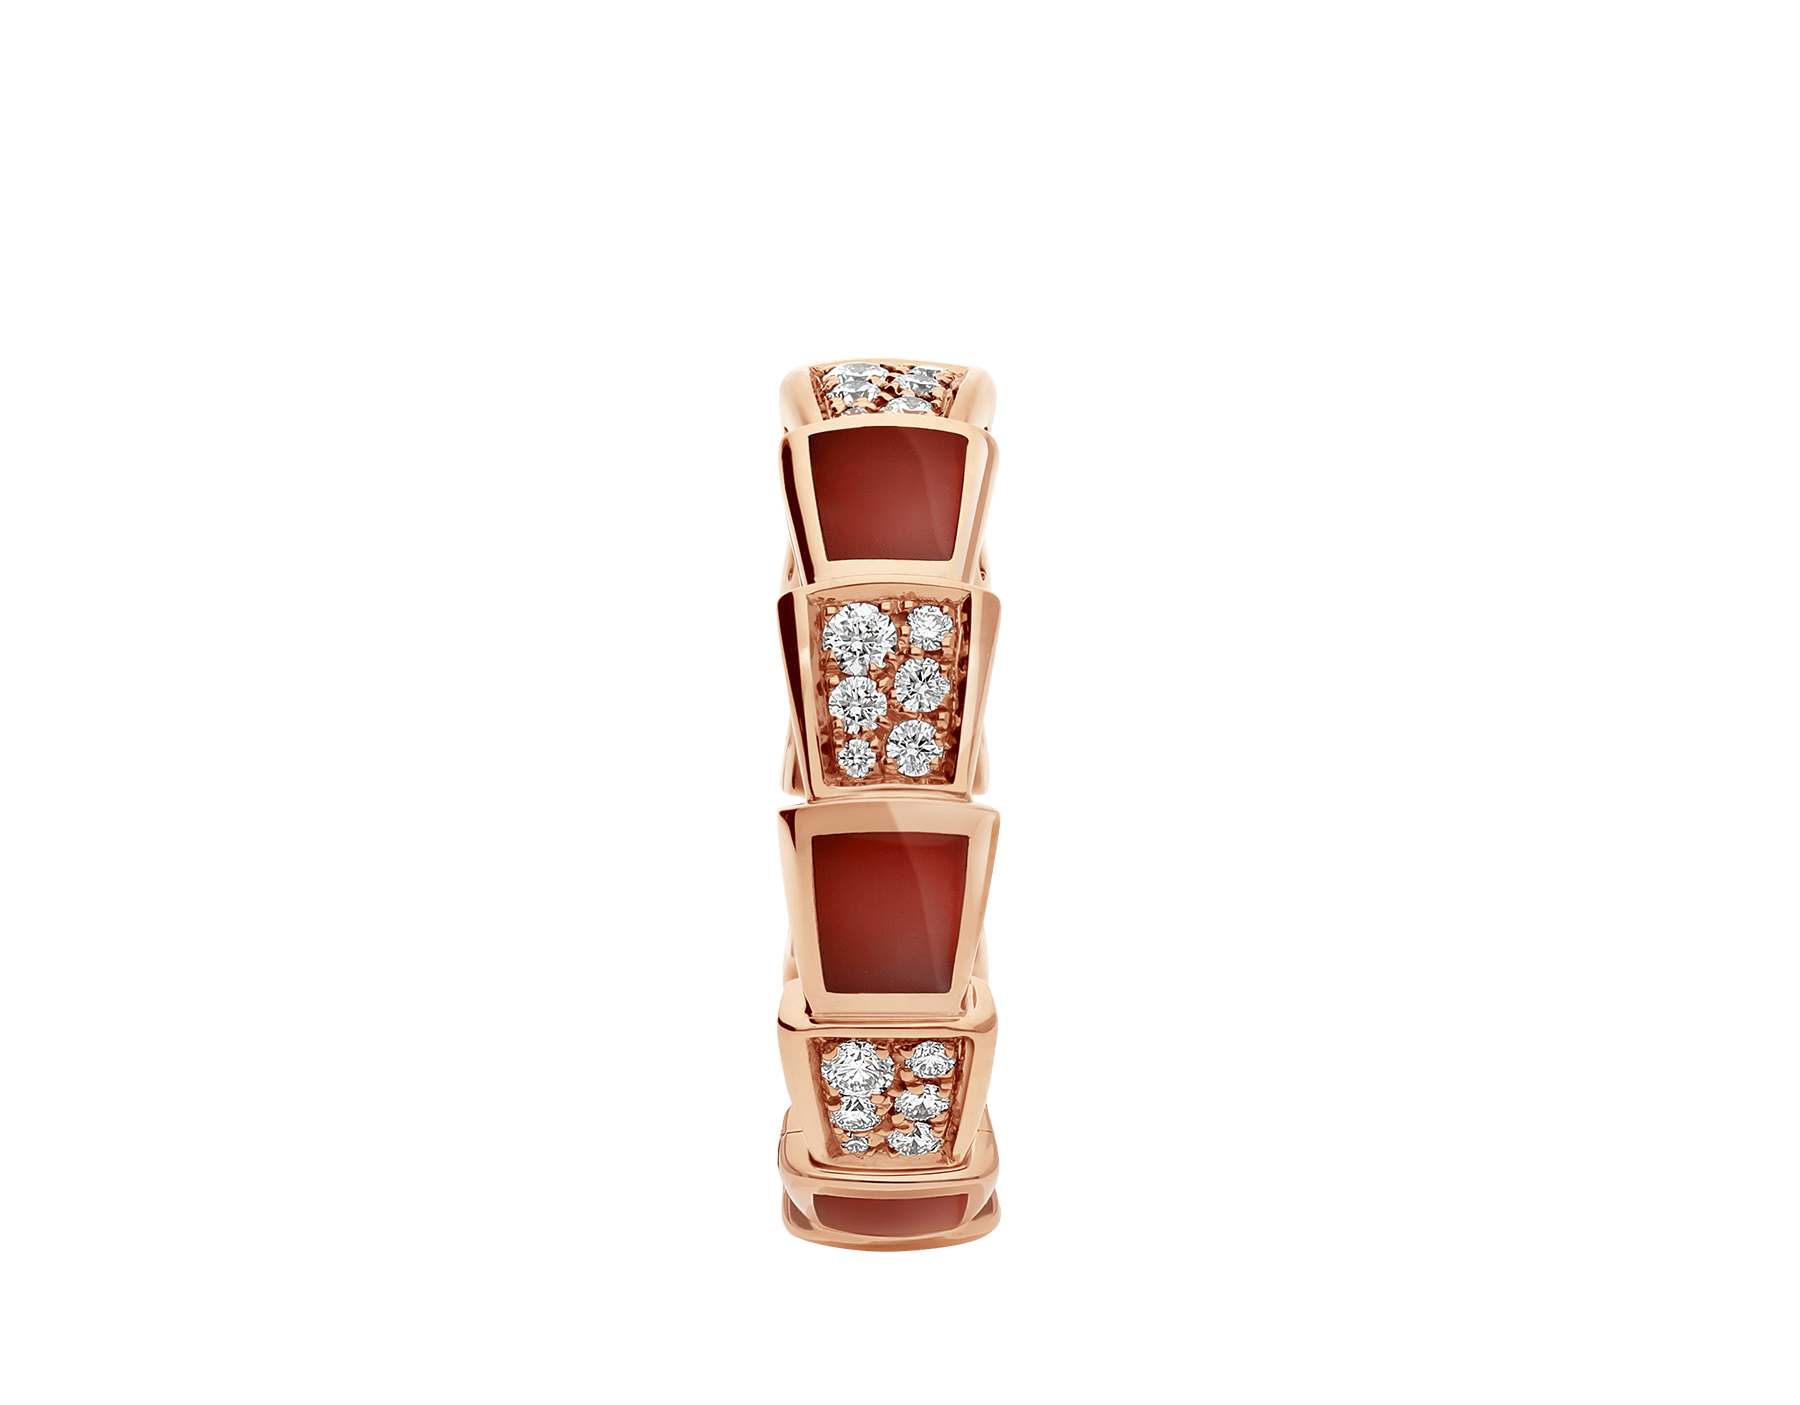 Serpenti Viper band ring in 18 kt rose gold, set with carnelian elements and pavé diamonds. AN857927 image 2